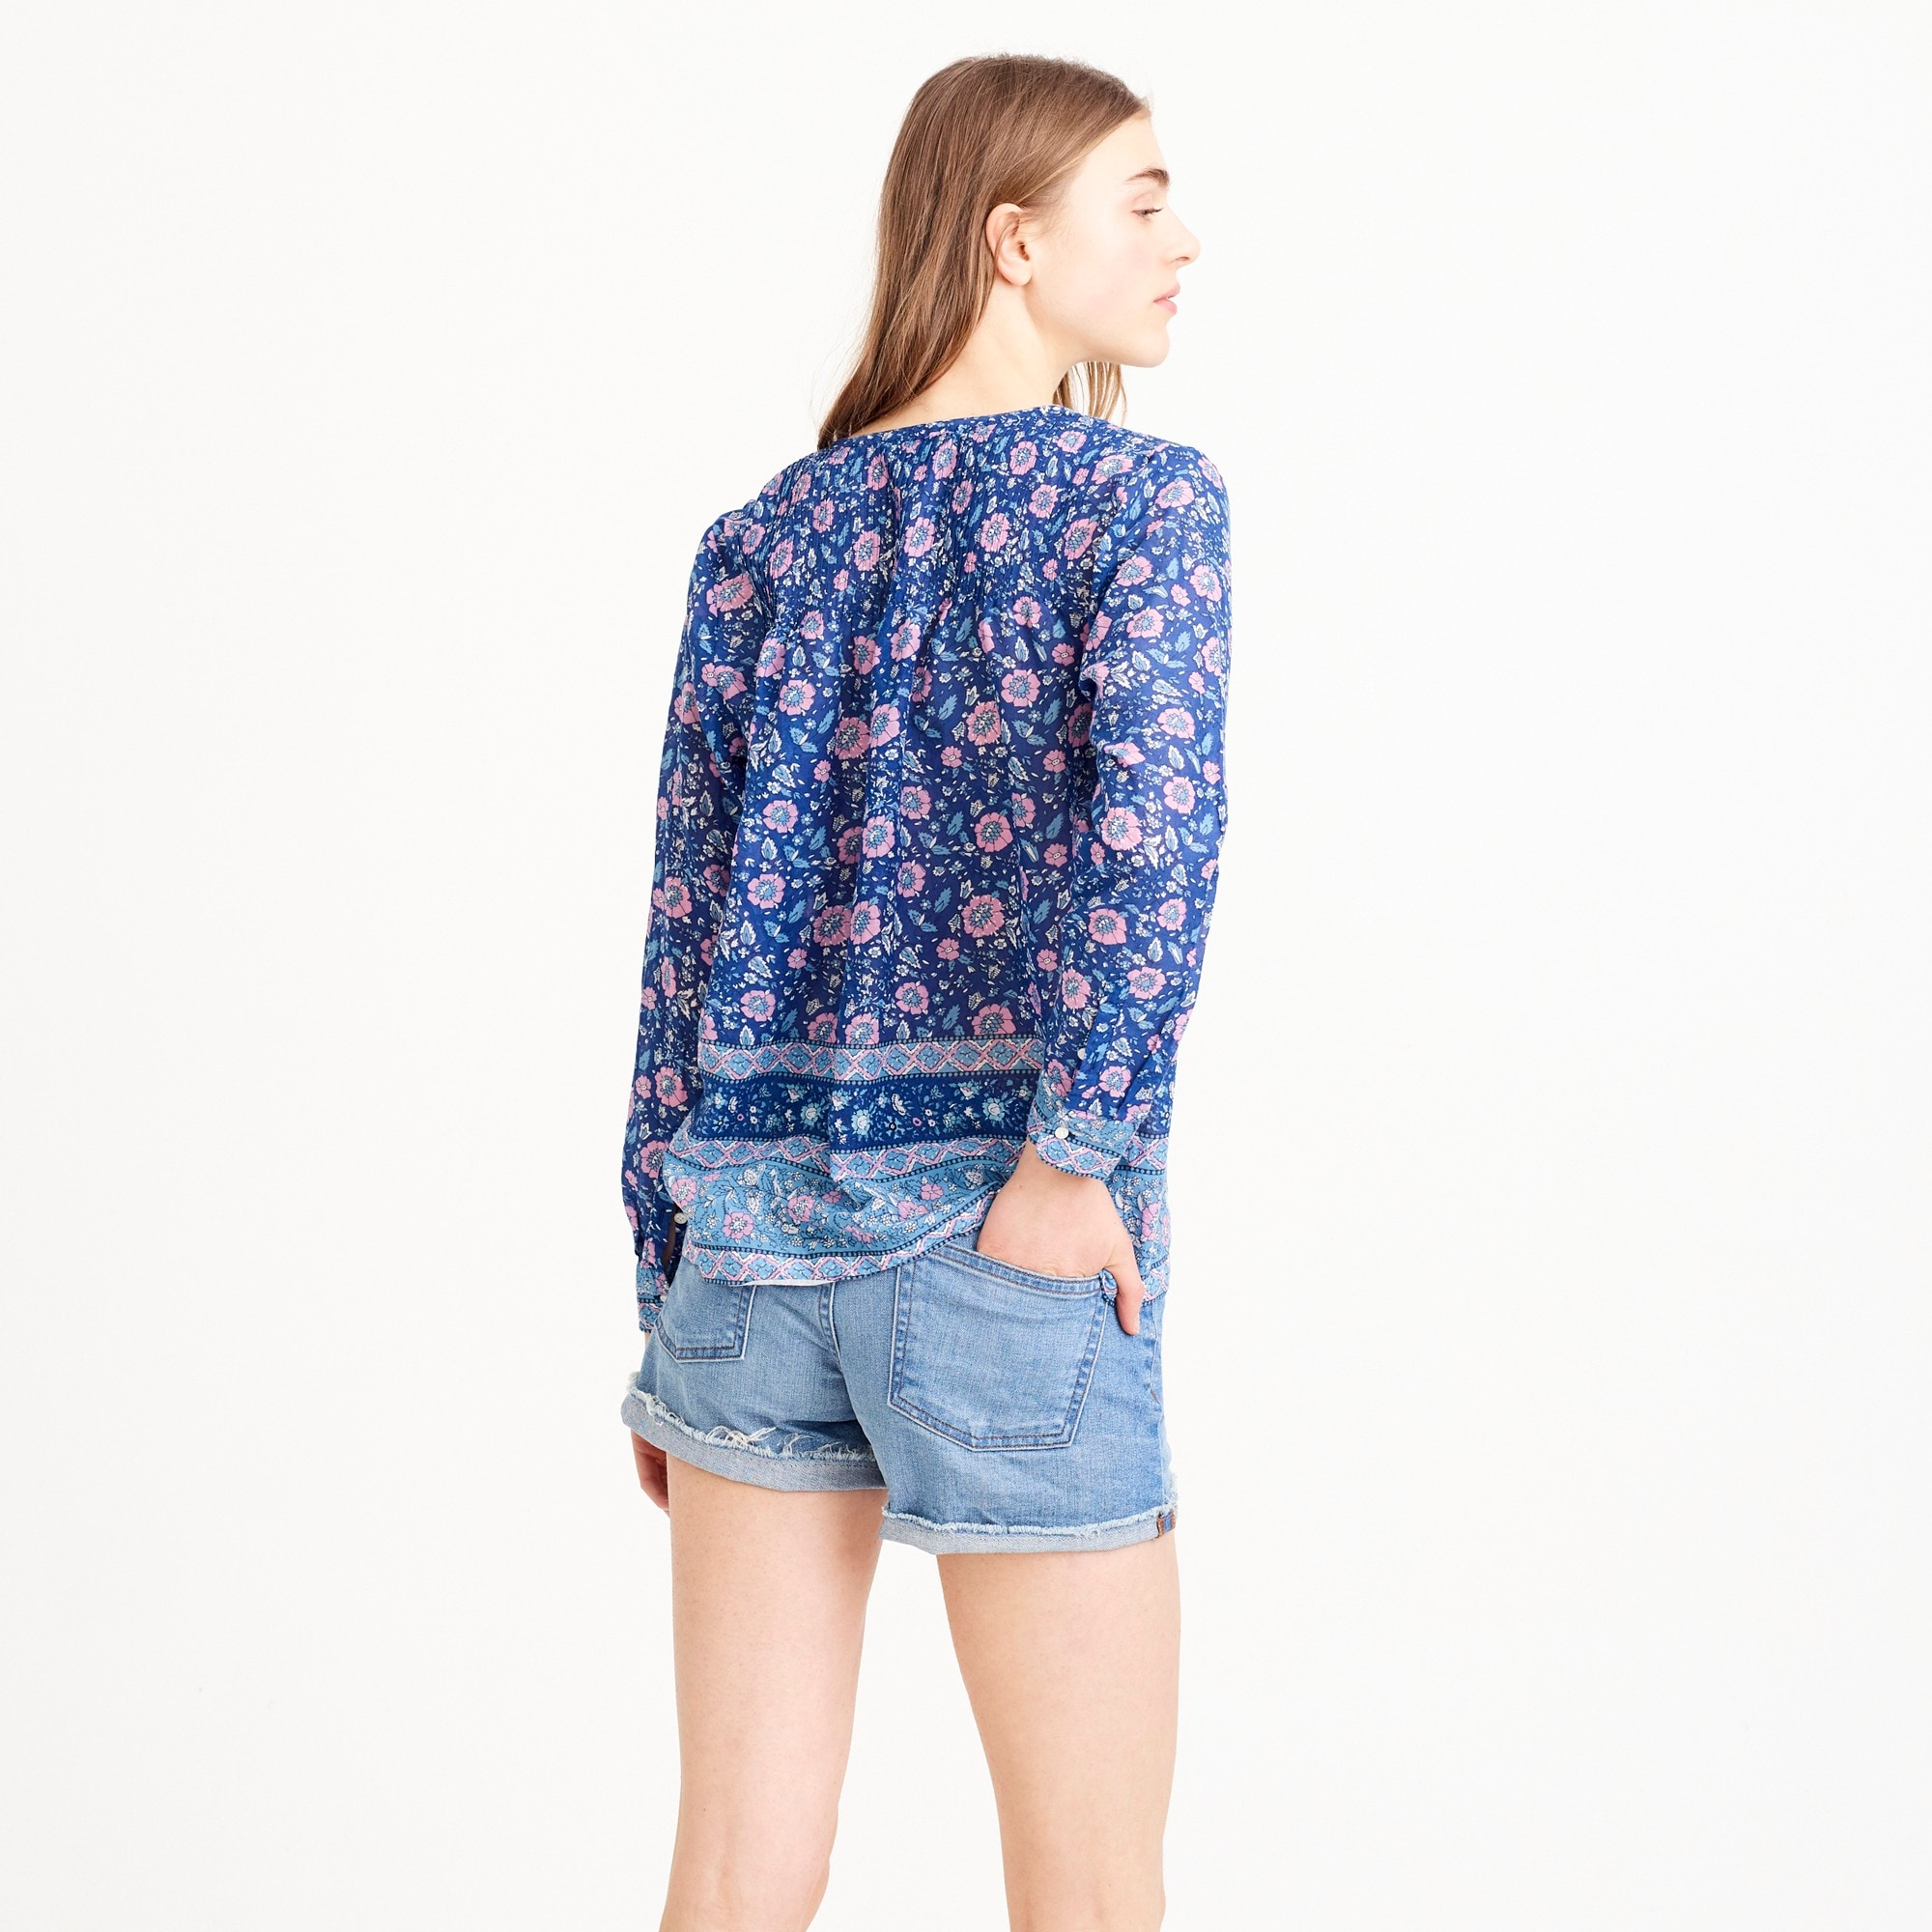 Image 3 for Cotton voile popover shirt in floral block print